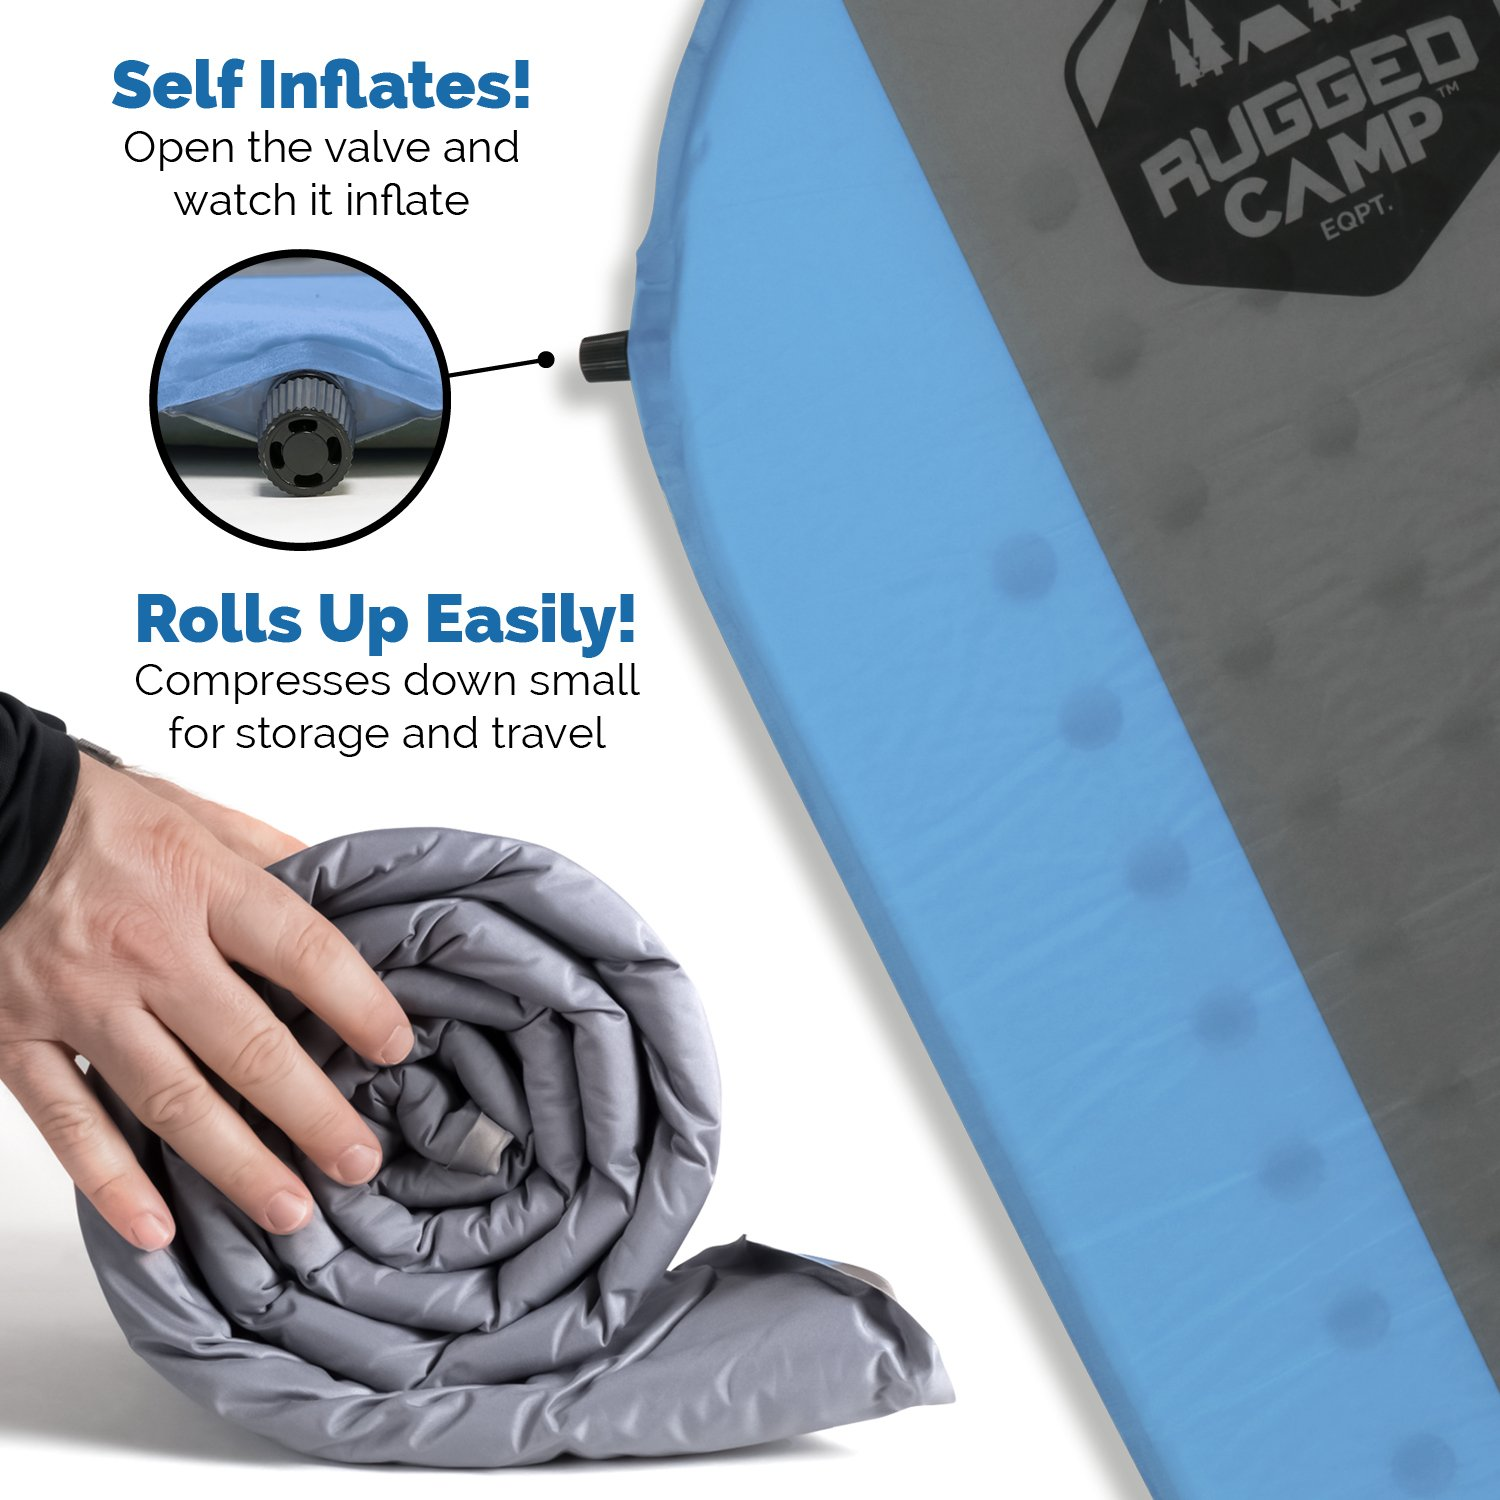 Rugged Camp Self Inflating Sleeping Pad